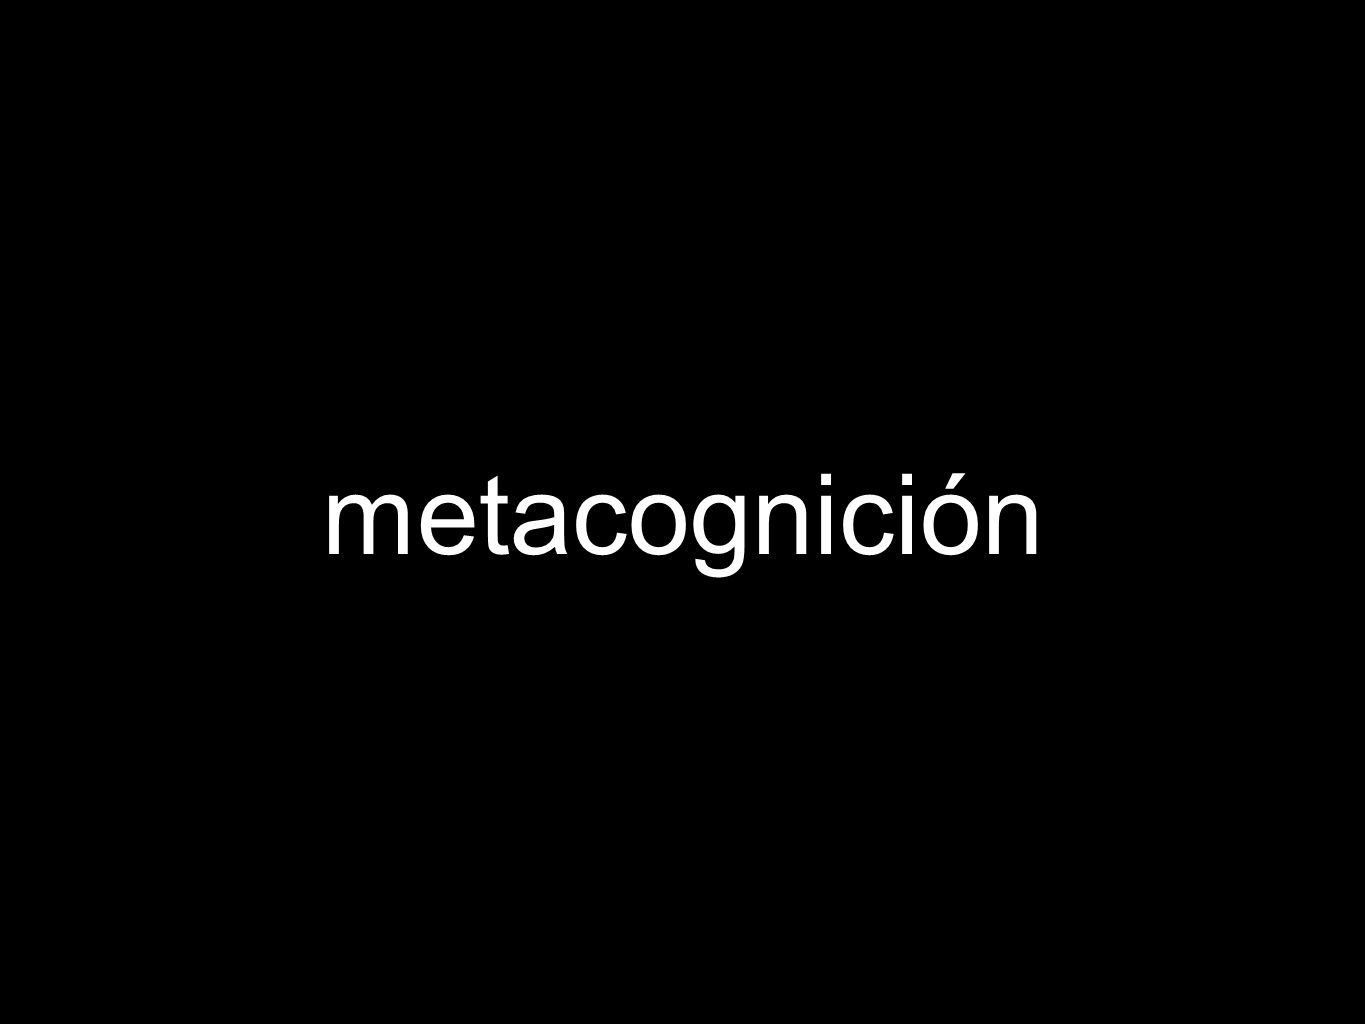 metacognición